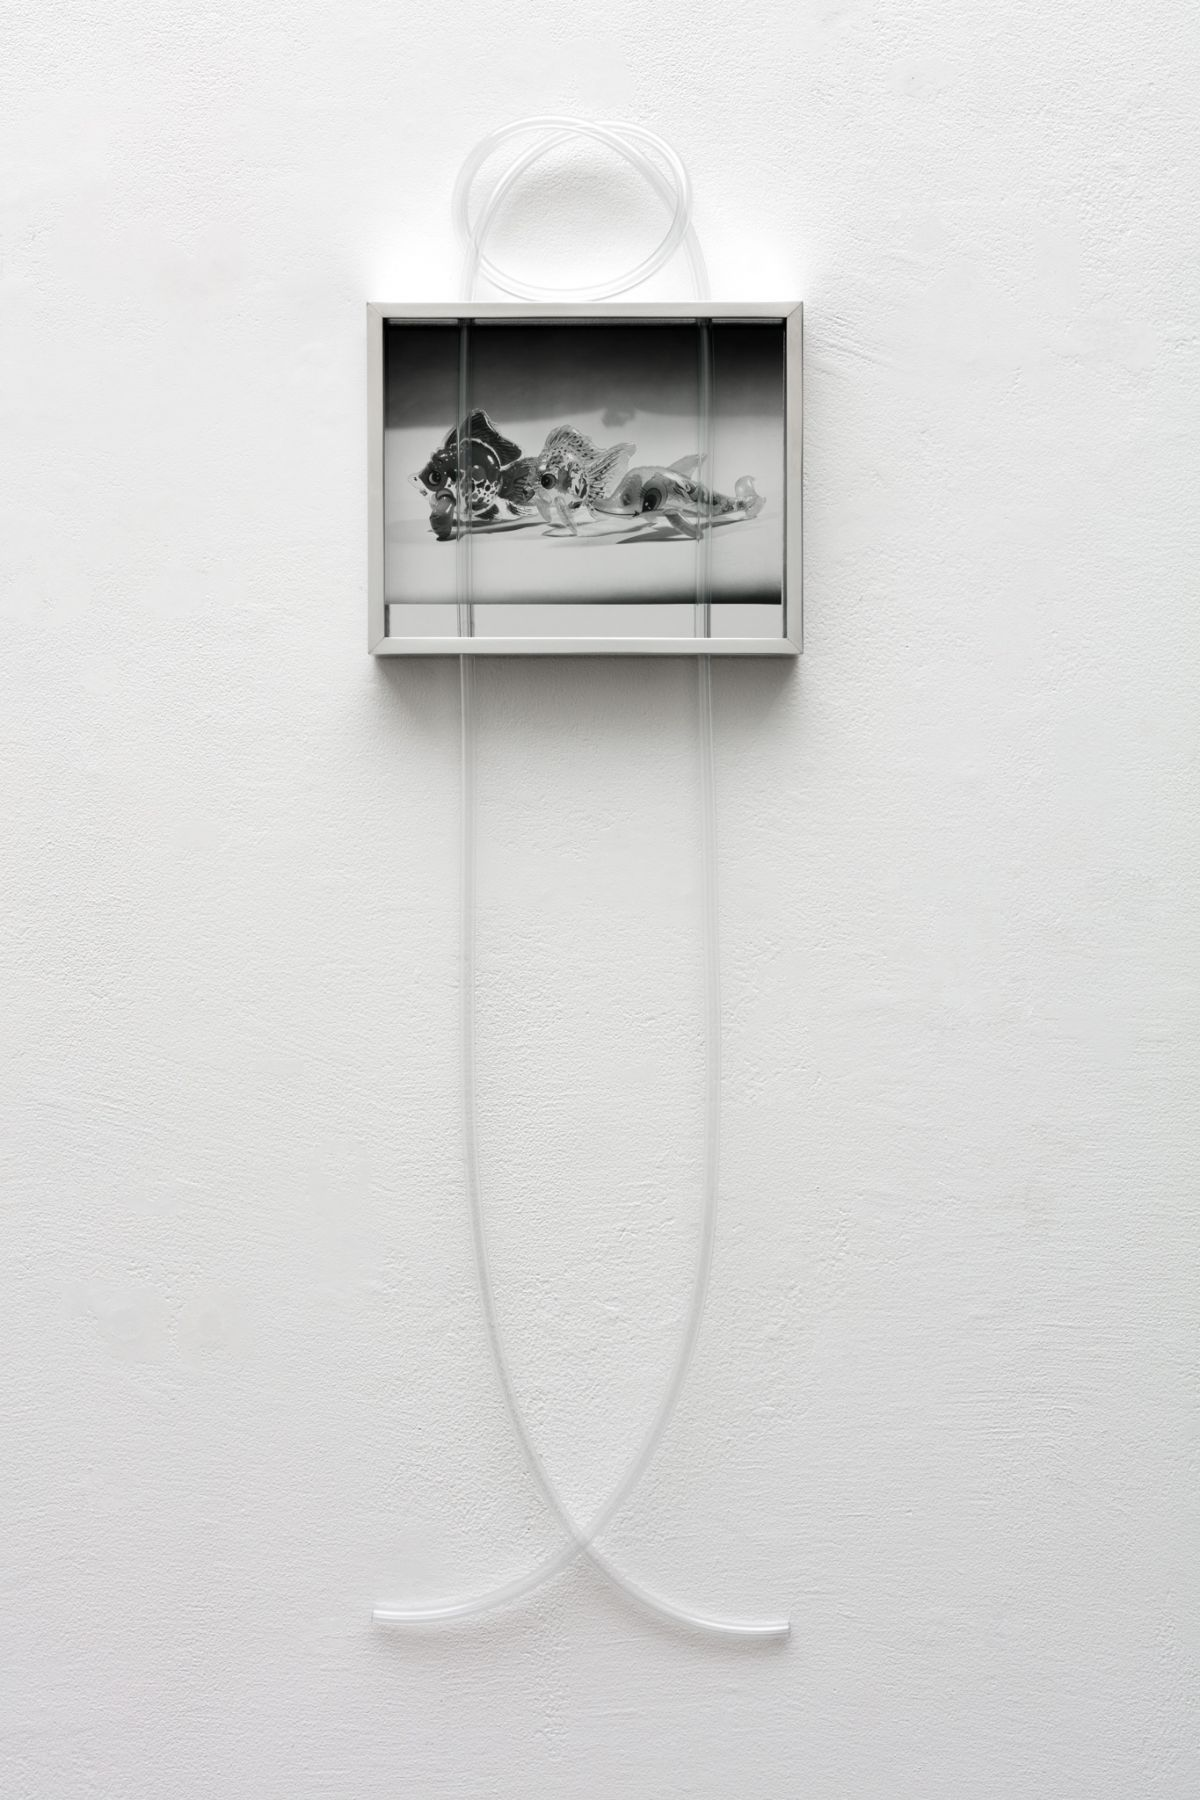 Elad Lassry, Untitled (Inflatable Dolphin, Fish)